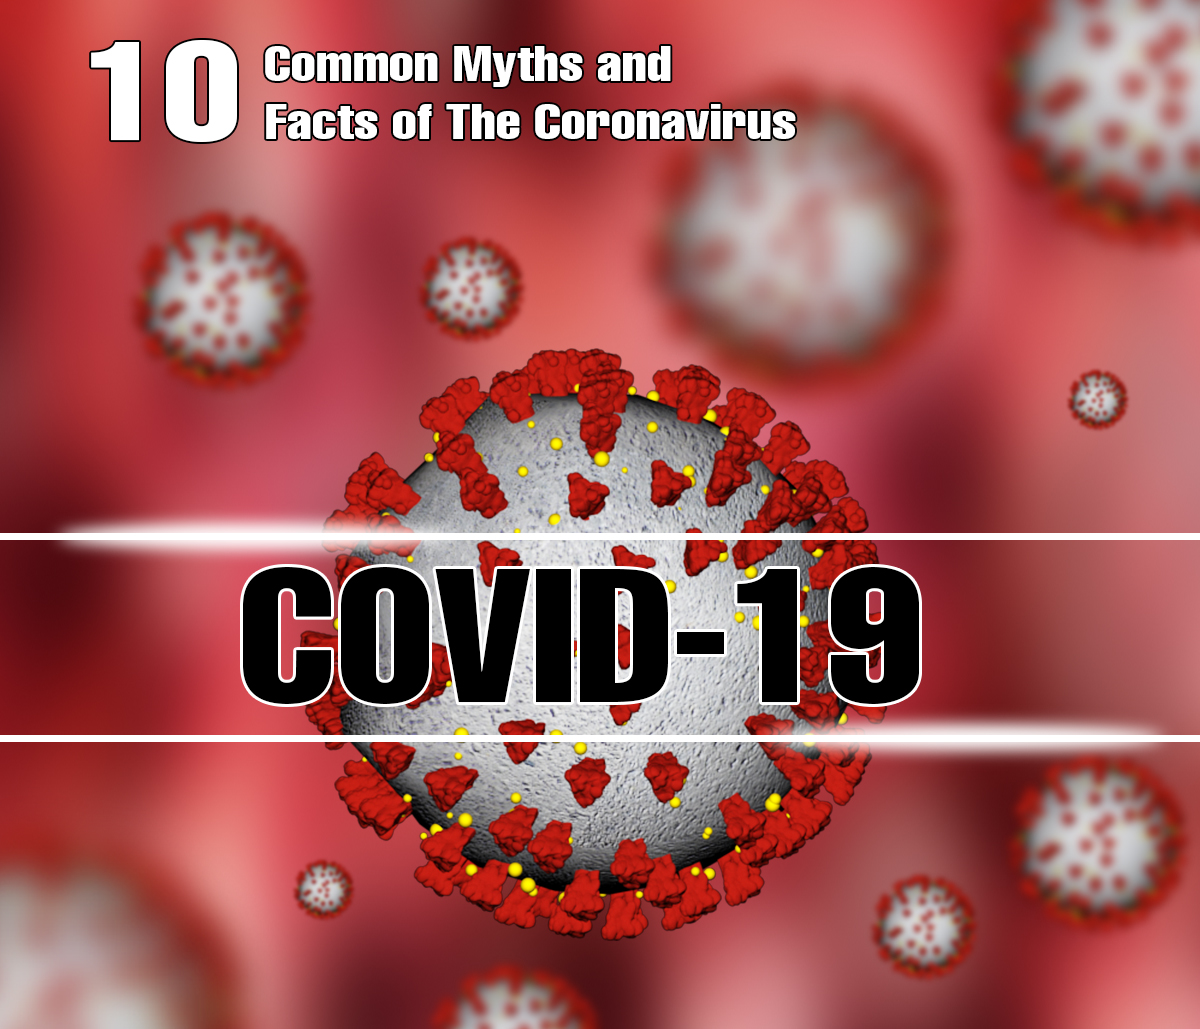 10 Common Myths and Facts of The Coronavirus